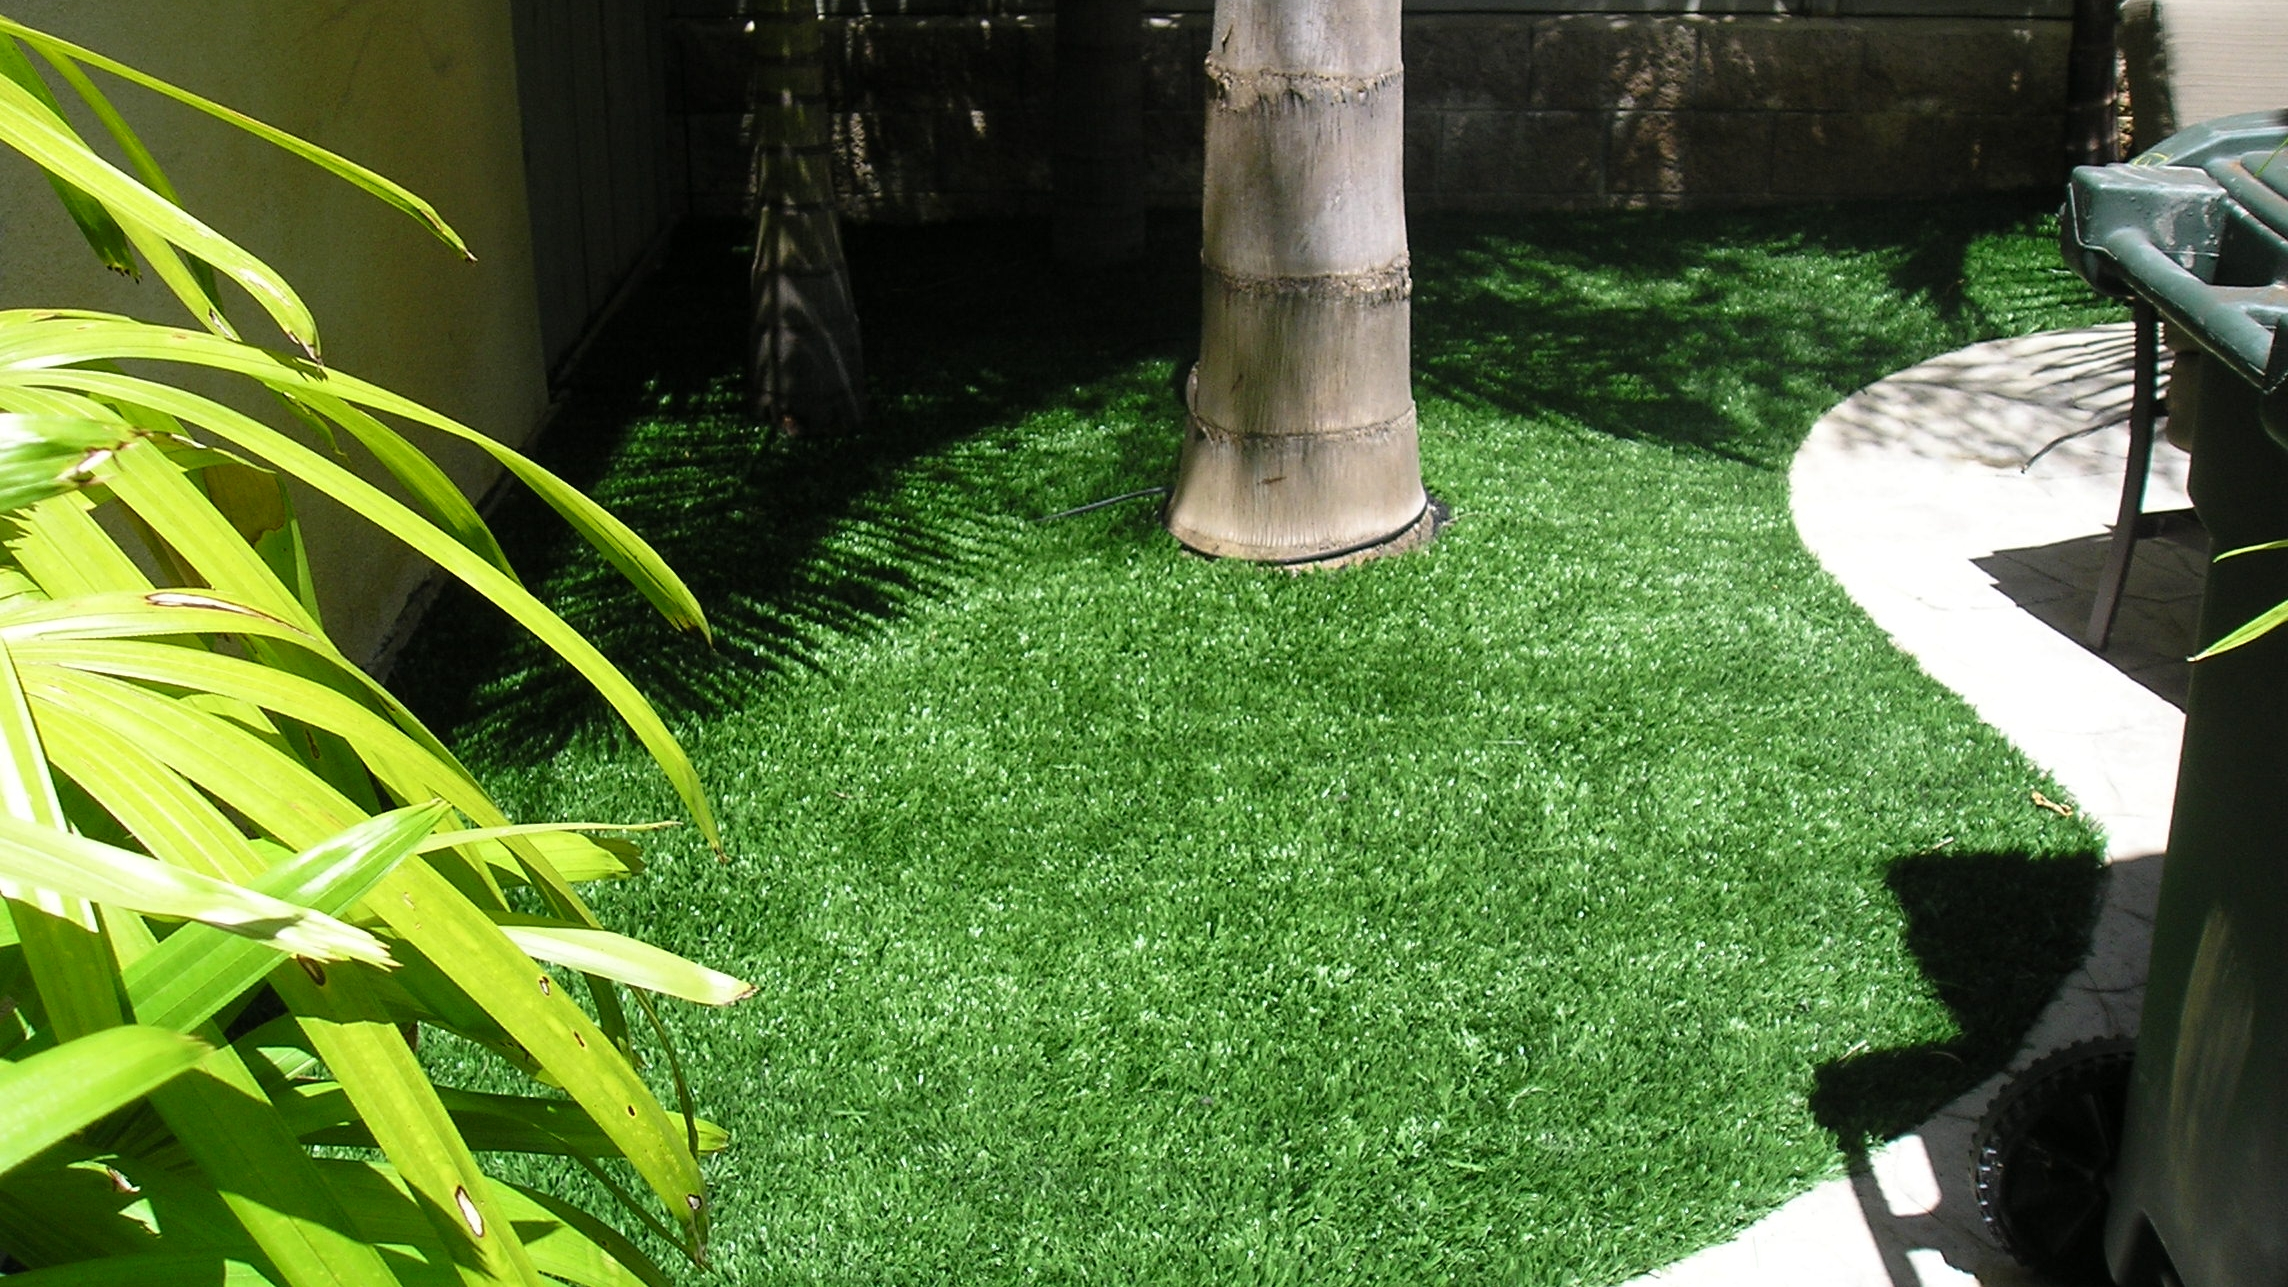 S Blade-90 artificial turf,synthetic turf,artificial turf installation,how to install artificial turf,used artificial turf